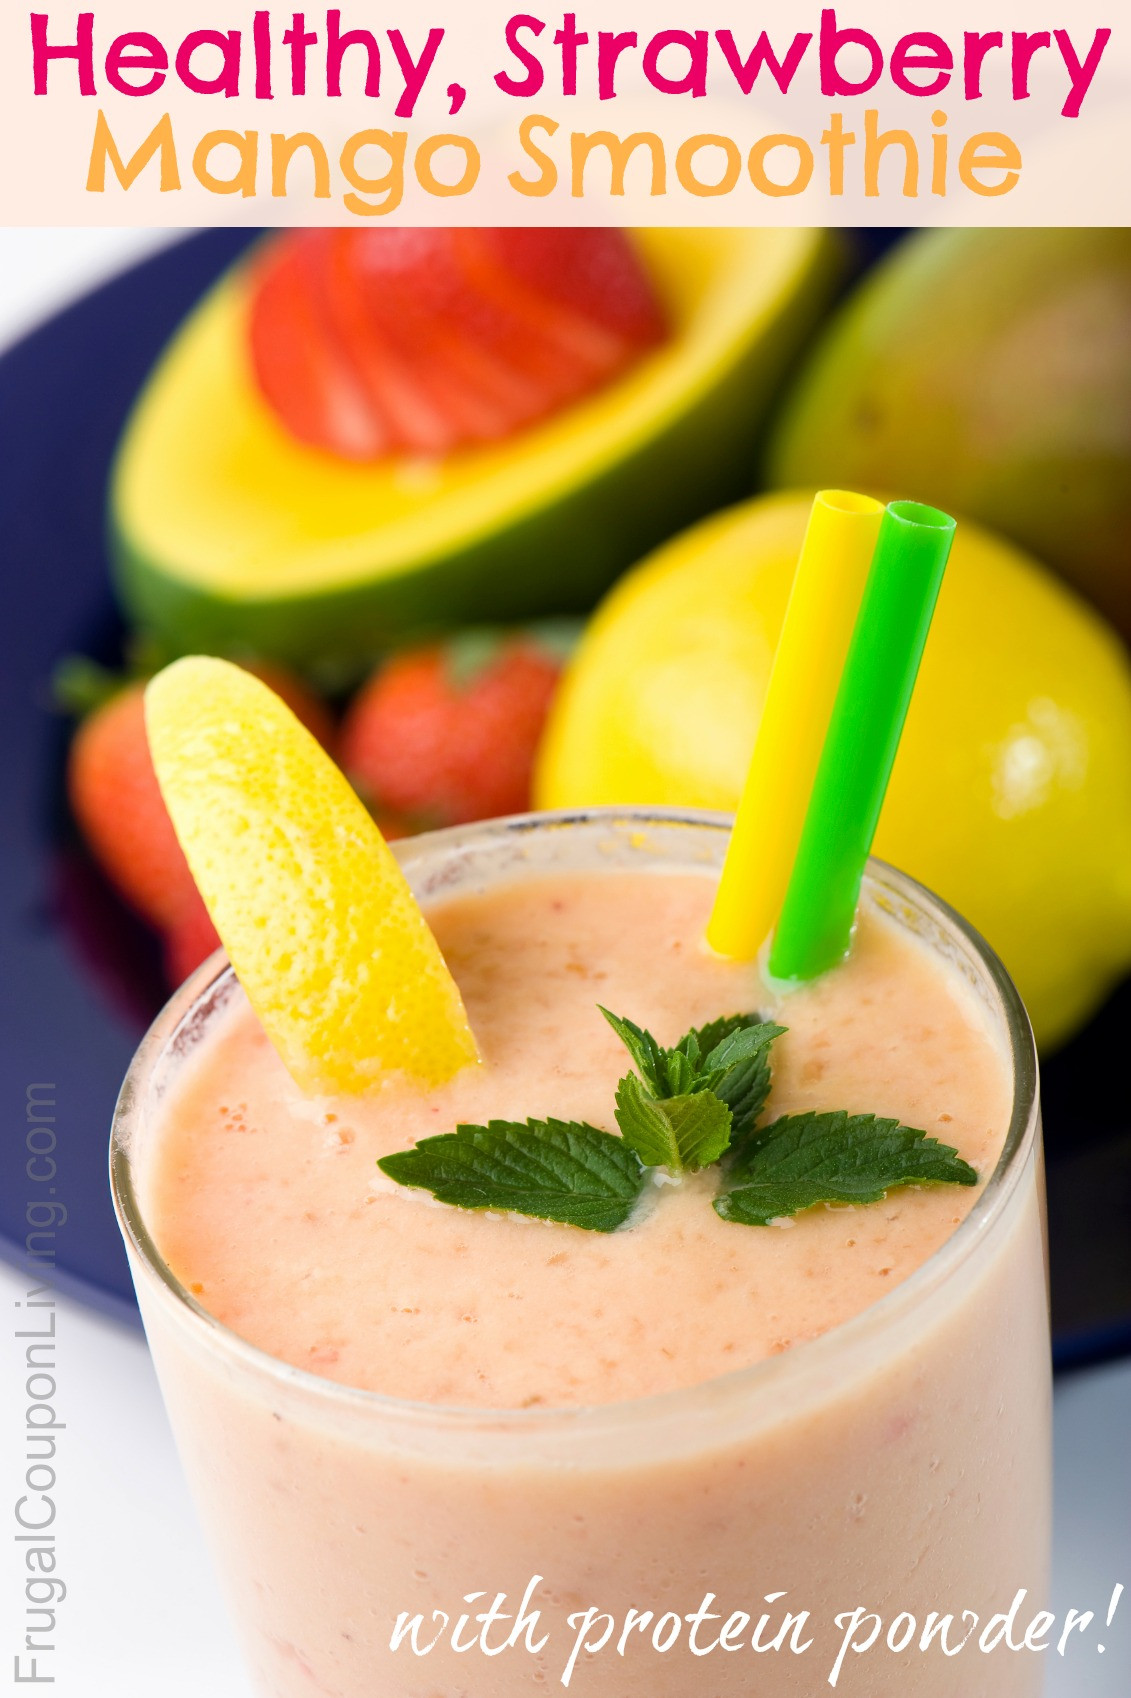 Healthy Smoothies with Protein Powder the 20 Best Ideas for Healthy Strawberry Mango Smoothie Recipe with Protein Powder